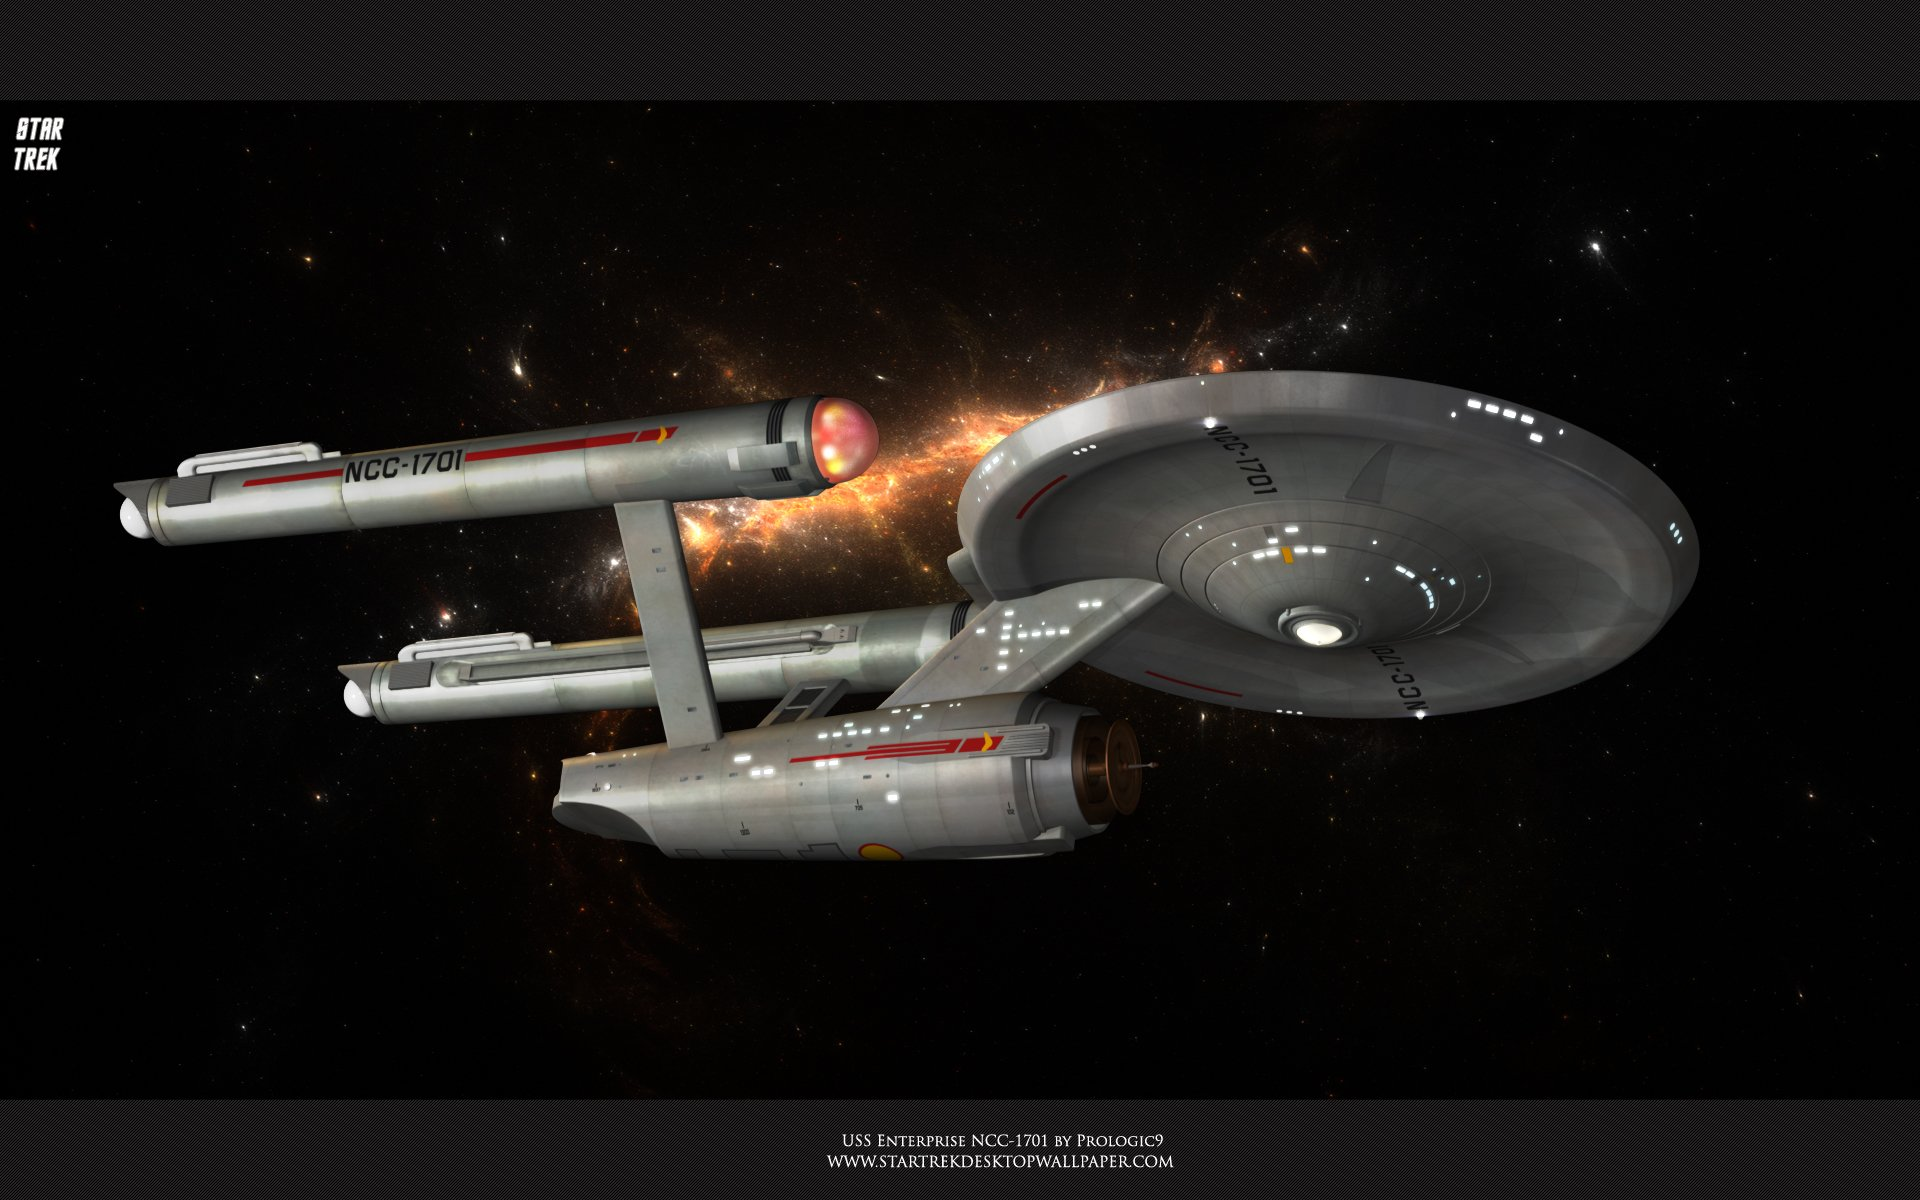 uss enterprise ncc1701 full hd wallpaper and background